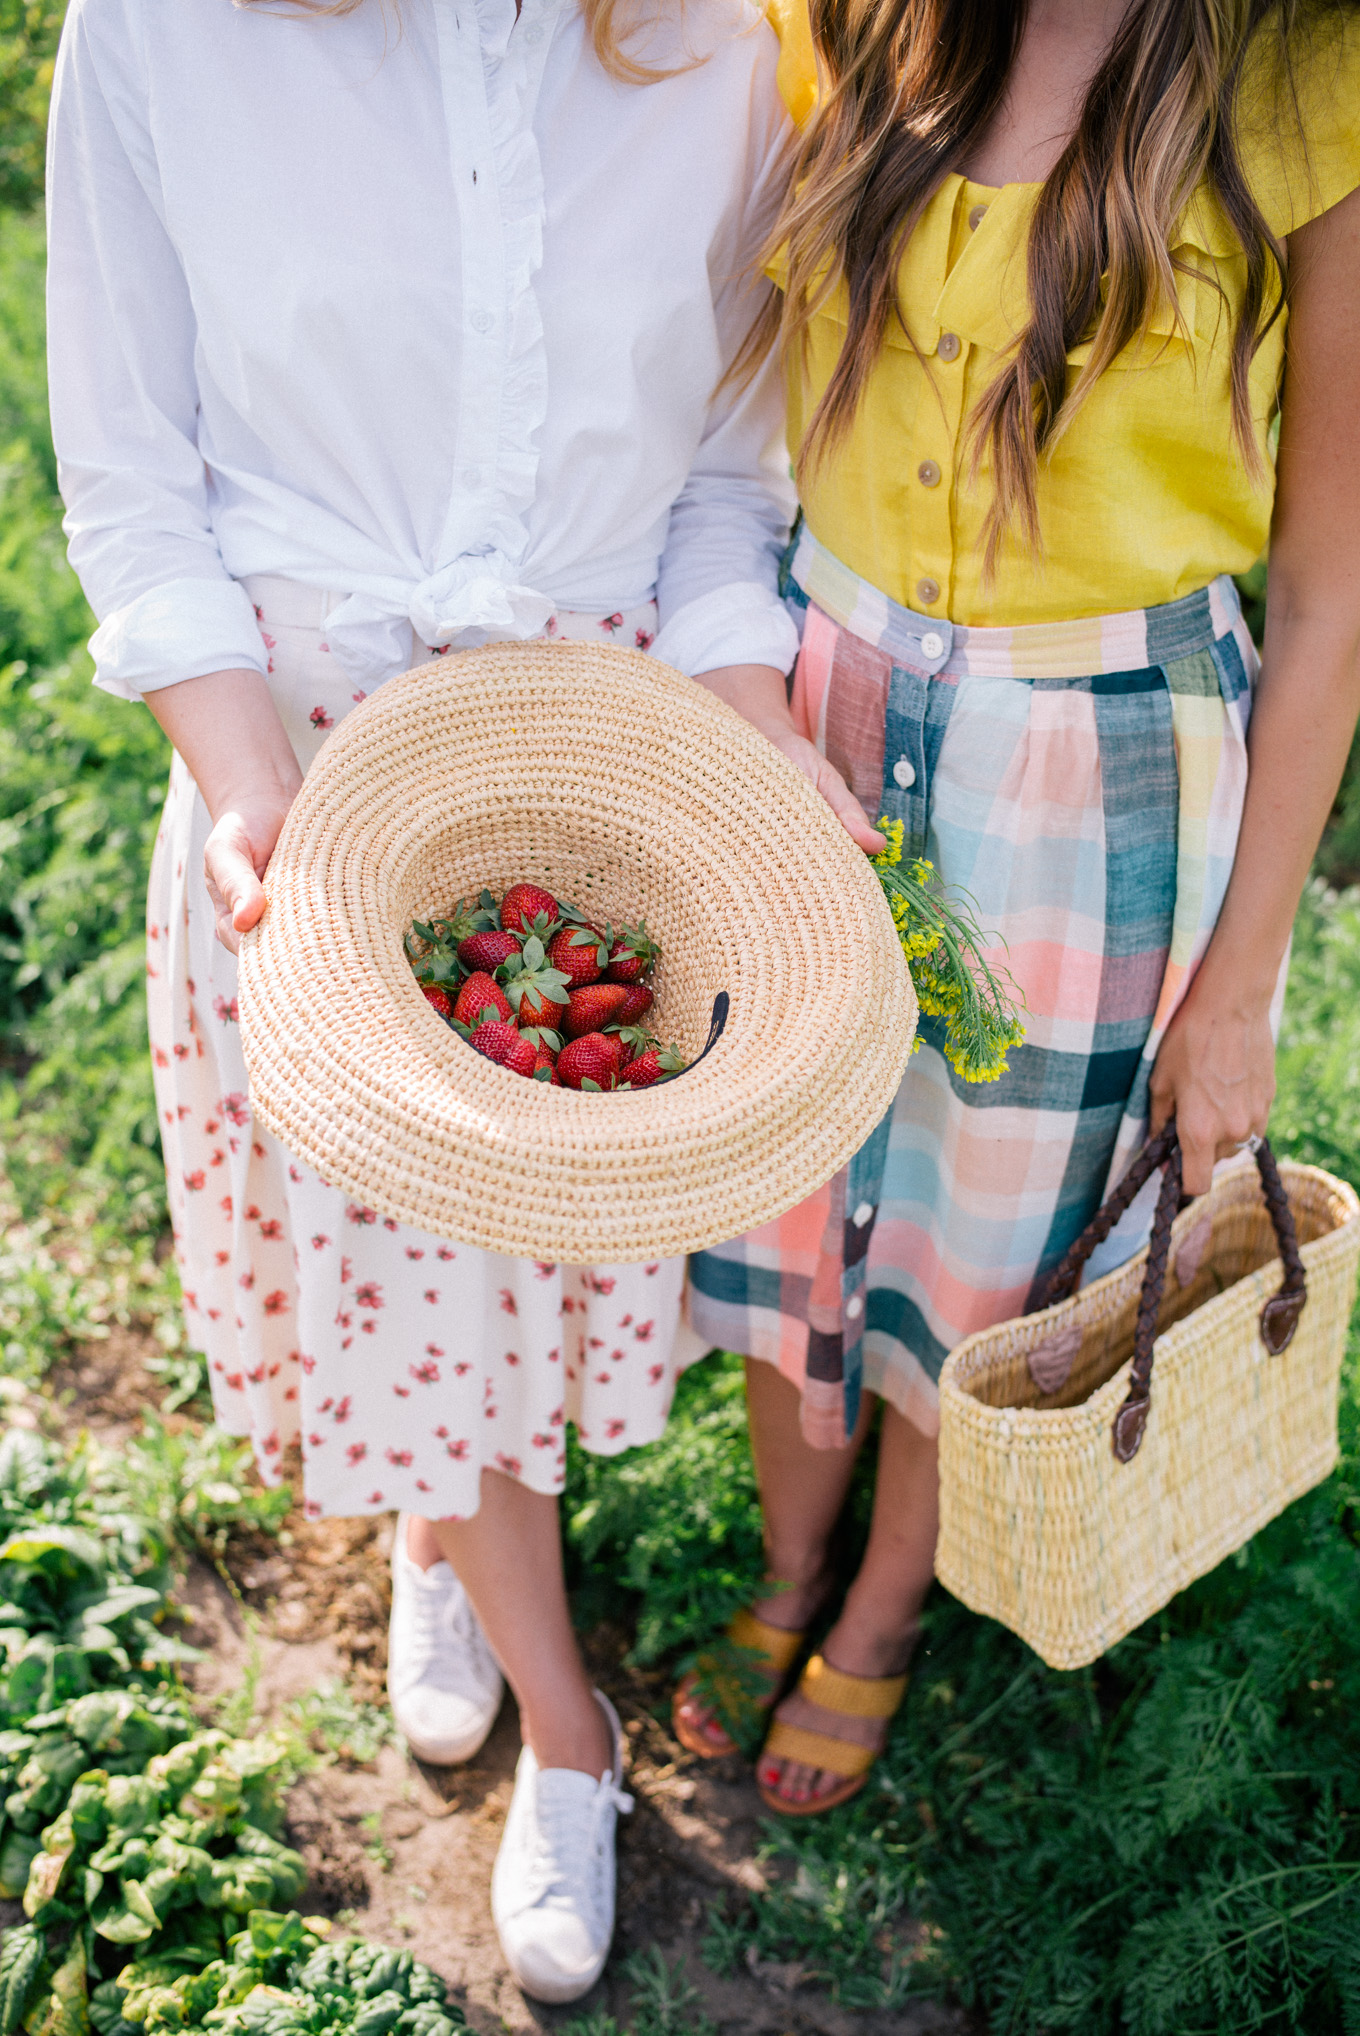 gmg-strawberry-picking-spring-1007230